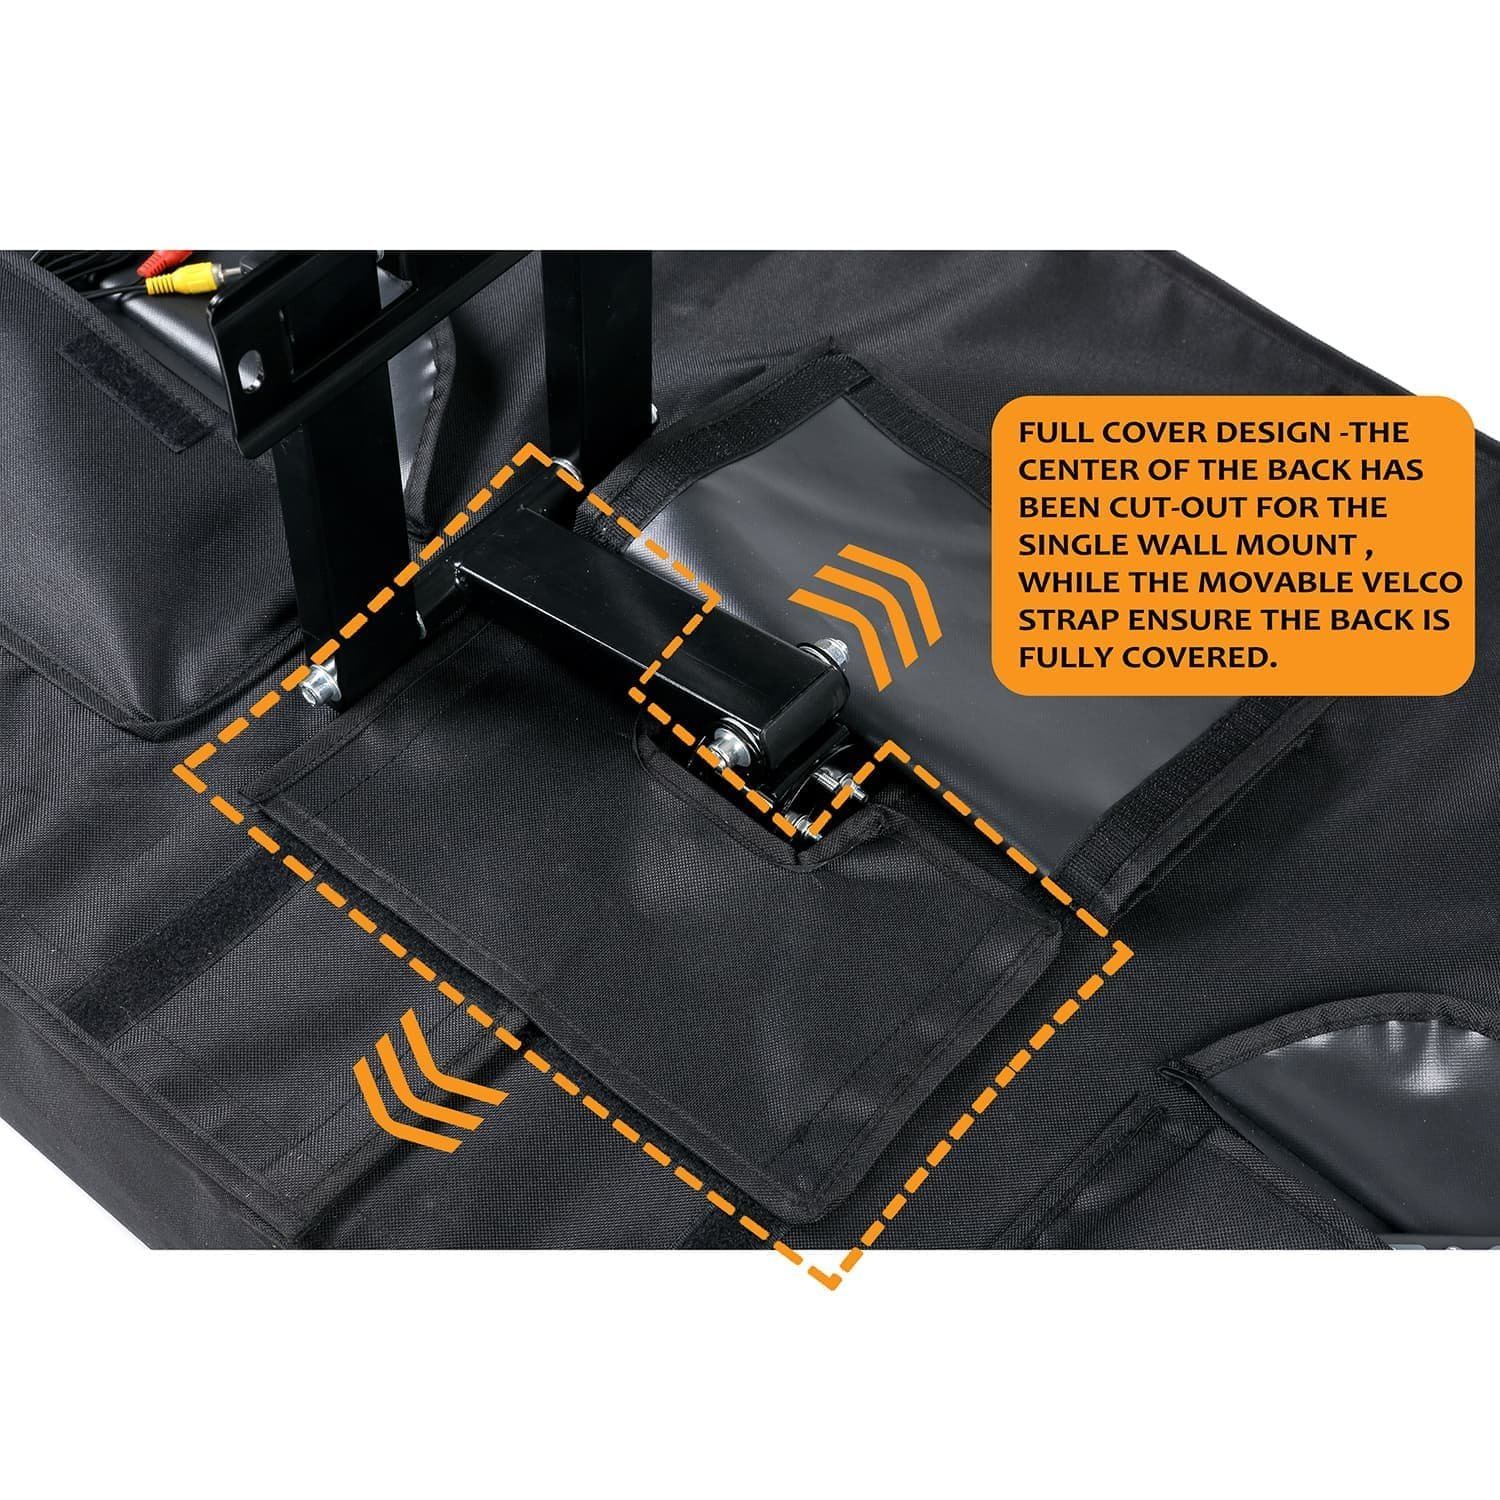 Outdoor TV Cover 52'' - 55'' - Fully Covered - Black - Weatherproof and Dust-Proof PVC Coated Oxford Fabric - Built to Last by Towber (Image #2)